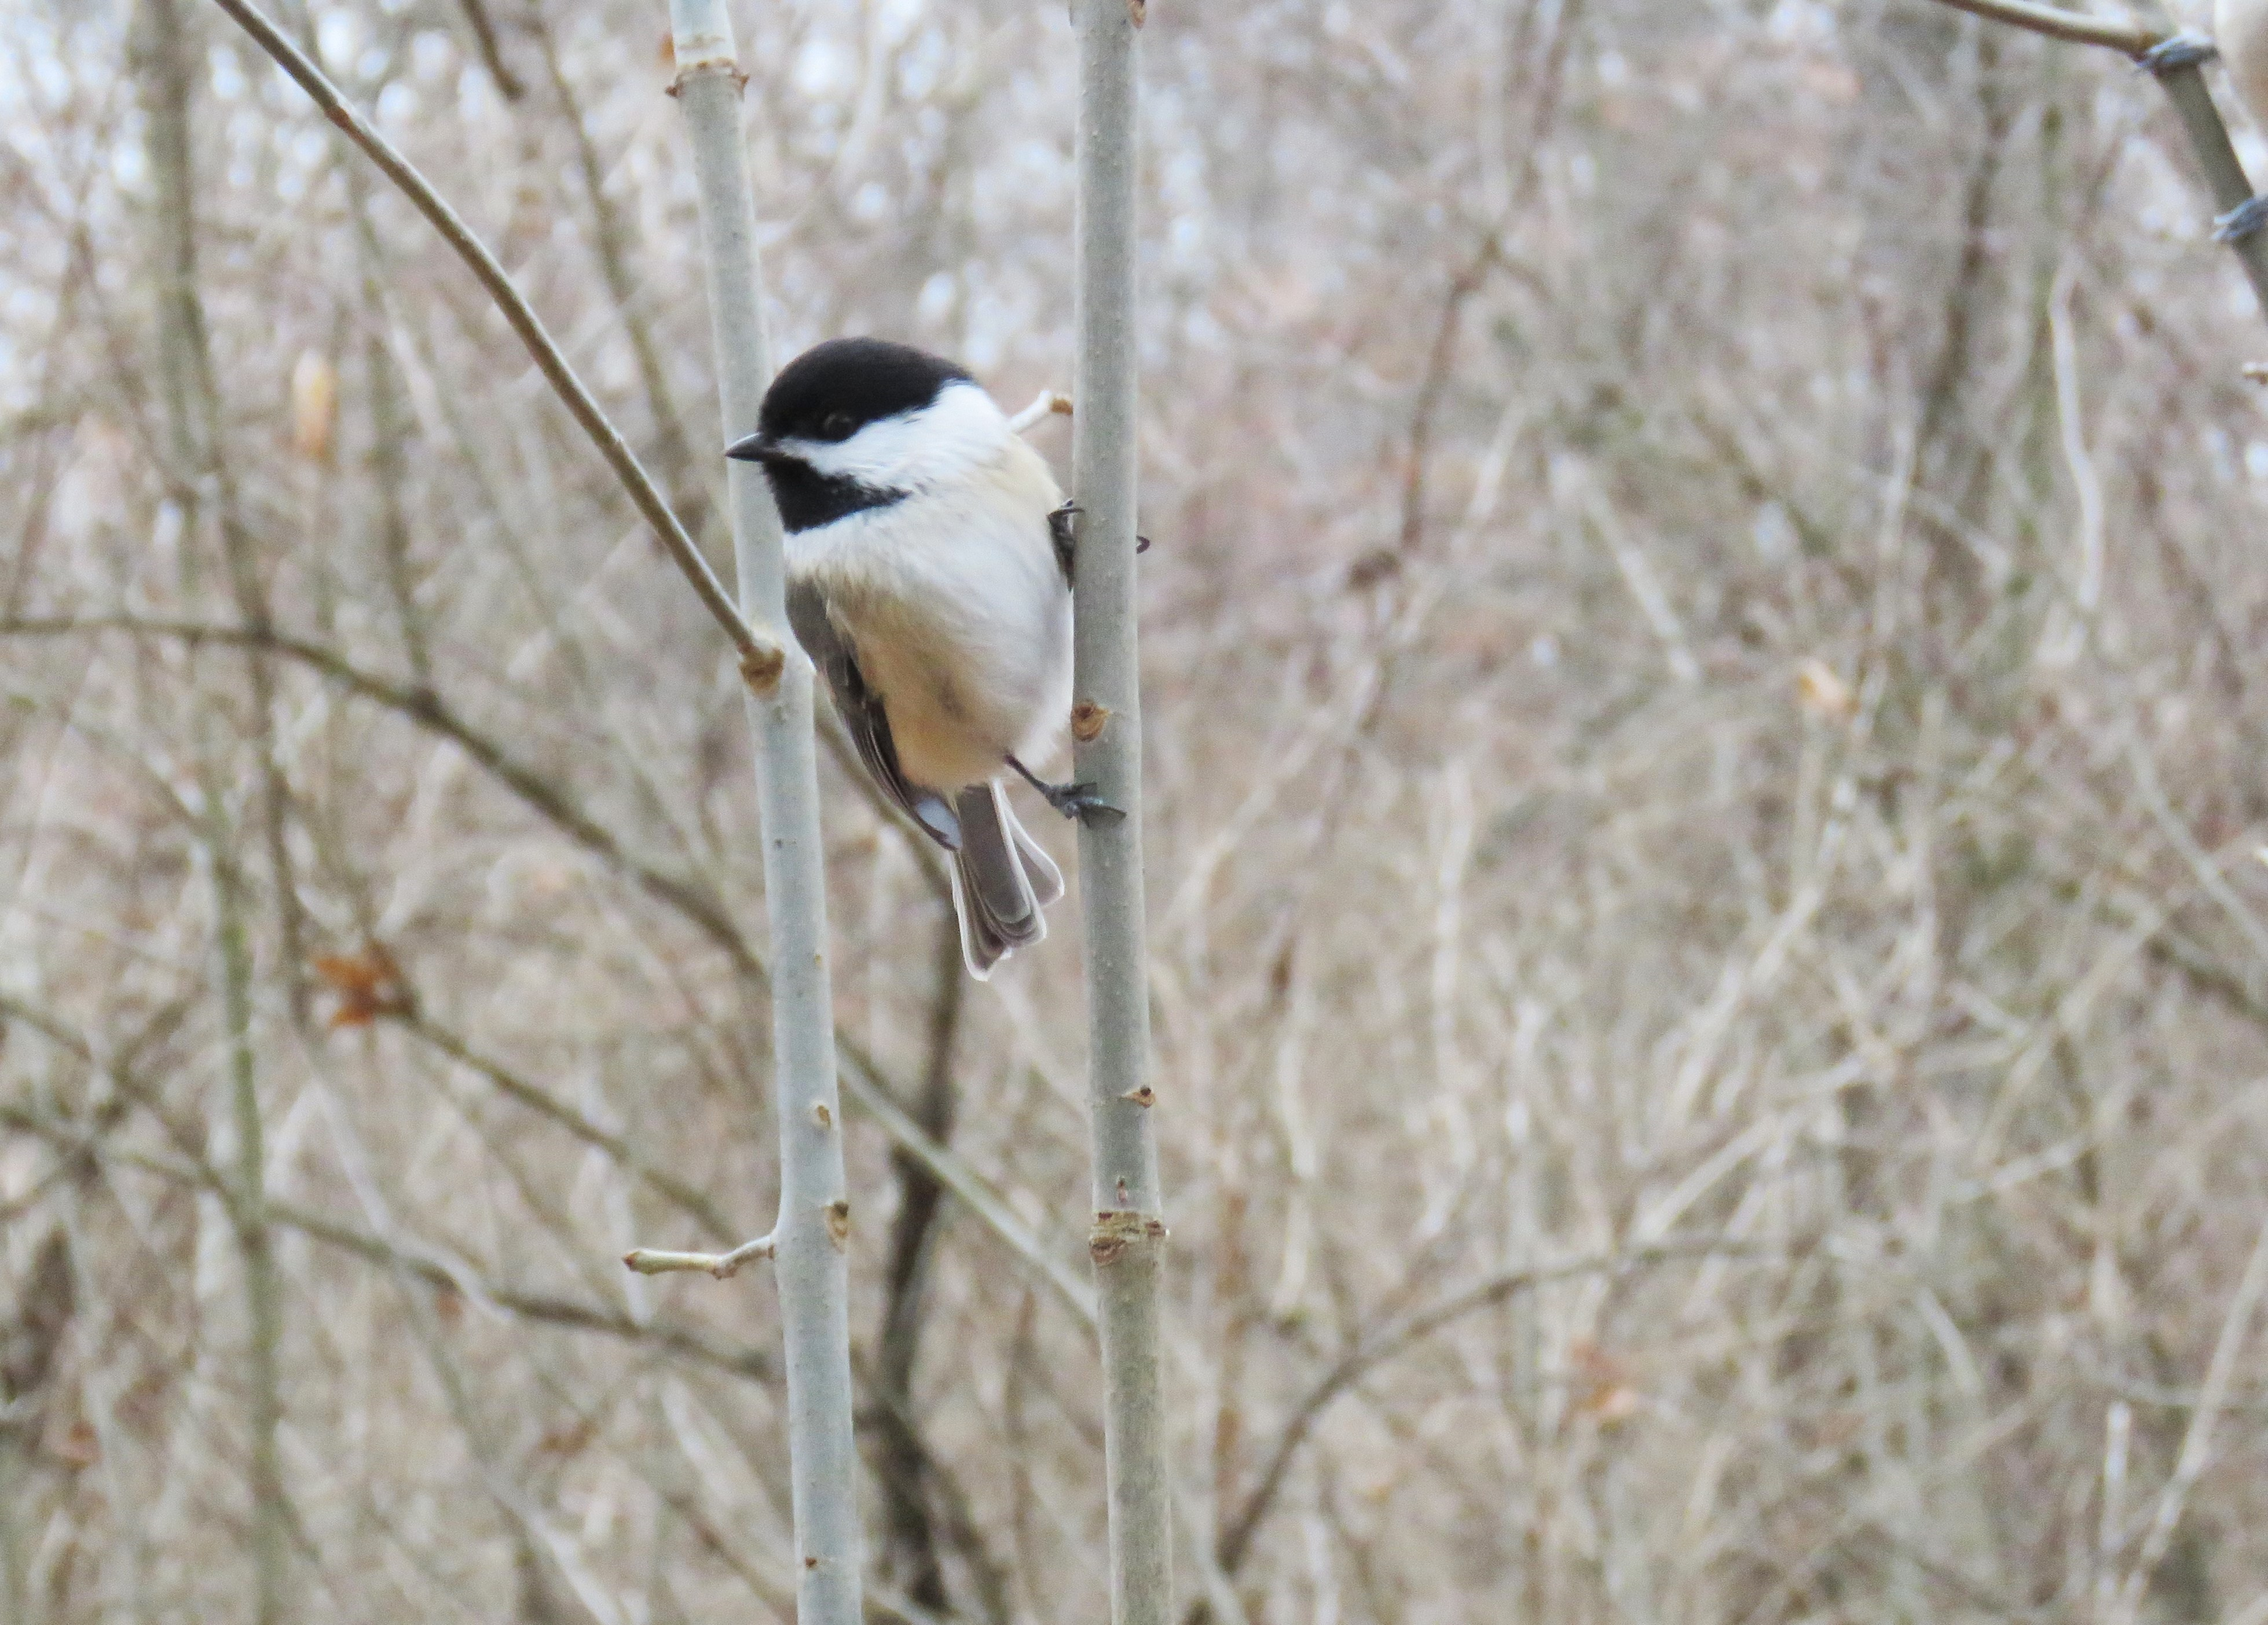 A Black-capped Chickadee perches upright between two branches